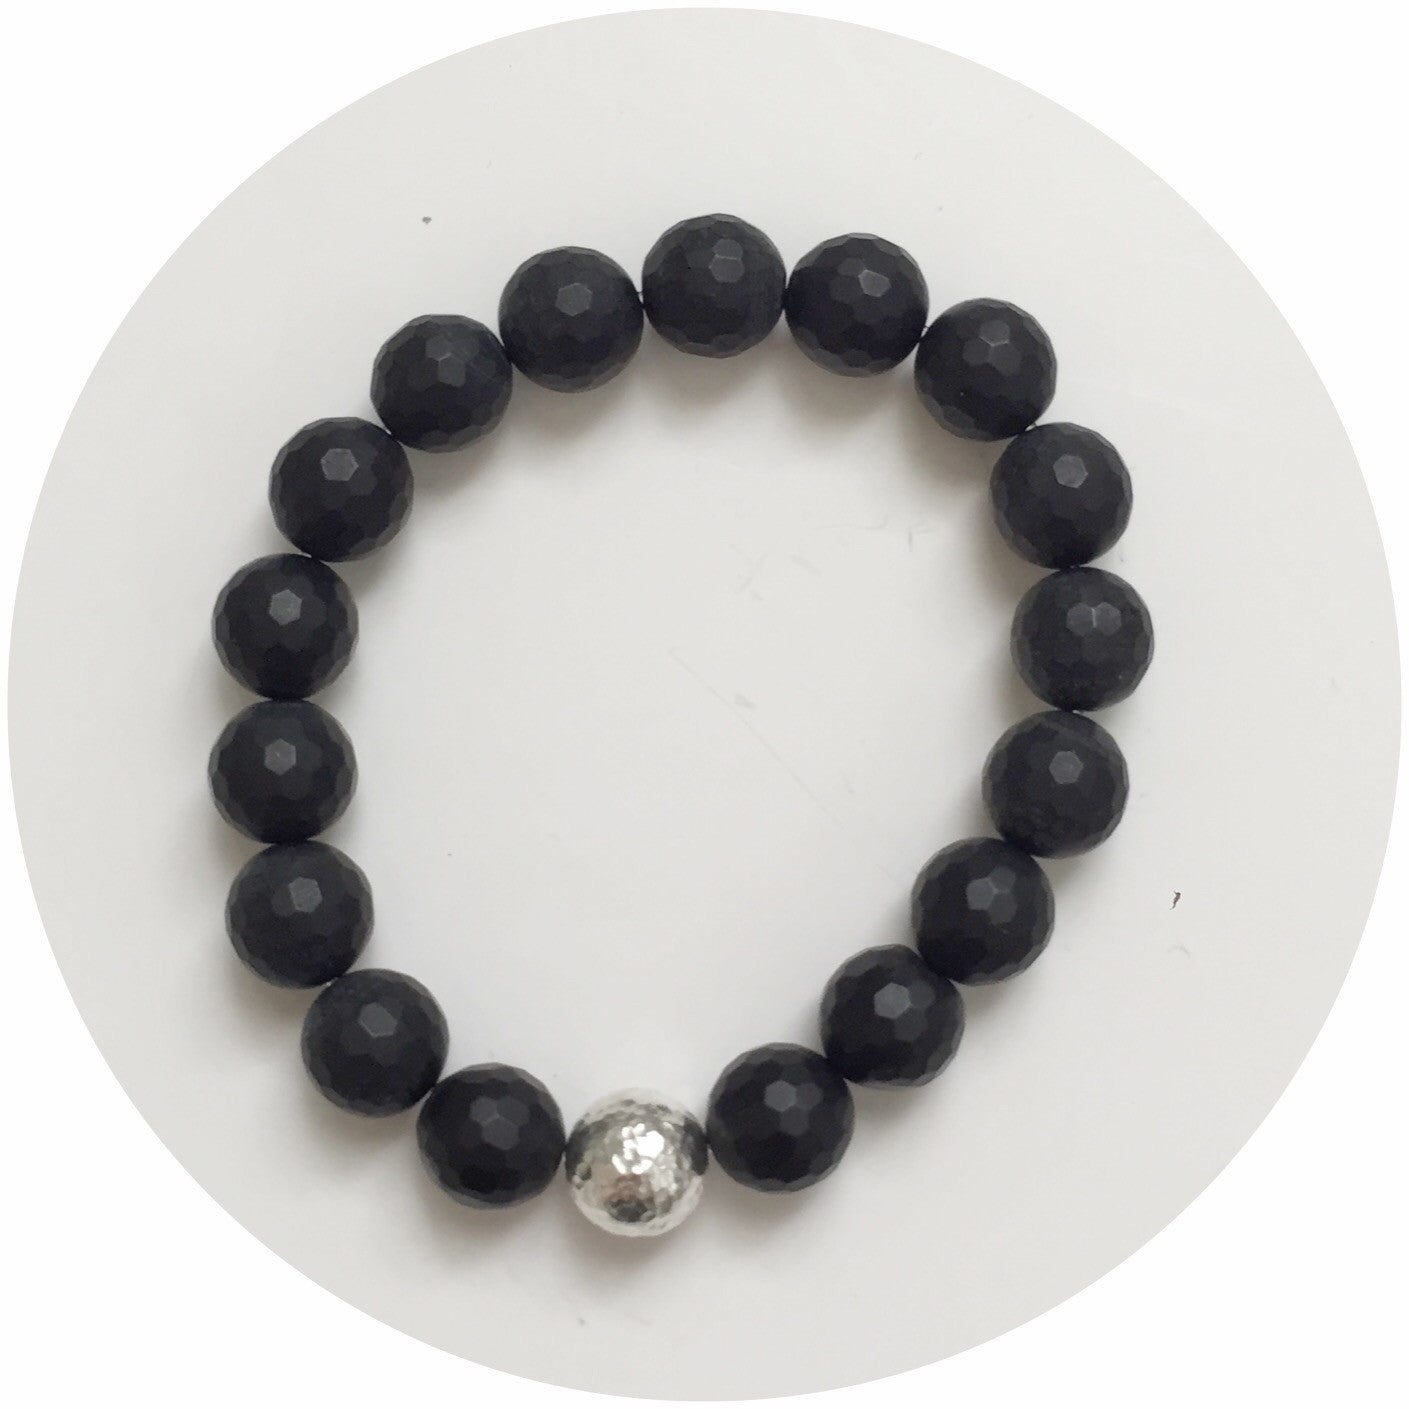 Matte Black Onyx with Hammered Sterling Silver Accent - Oriana Lamarca LLC